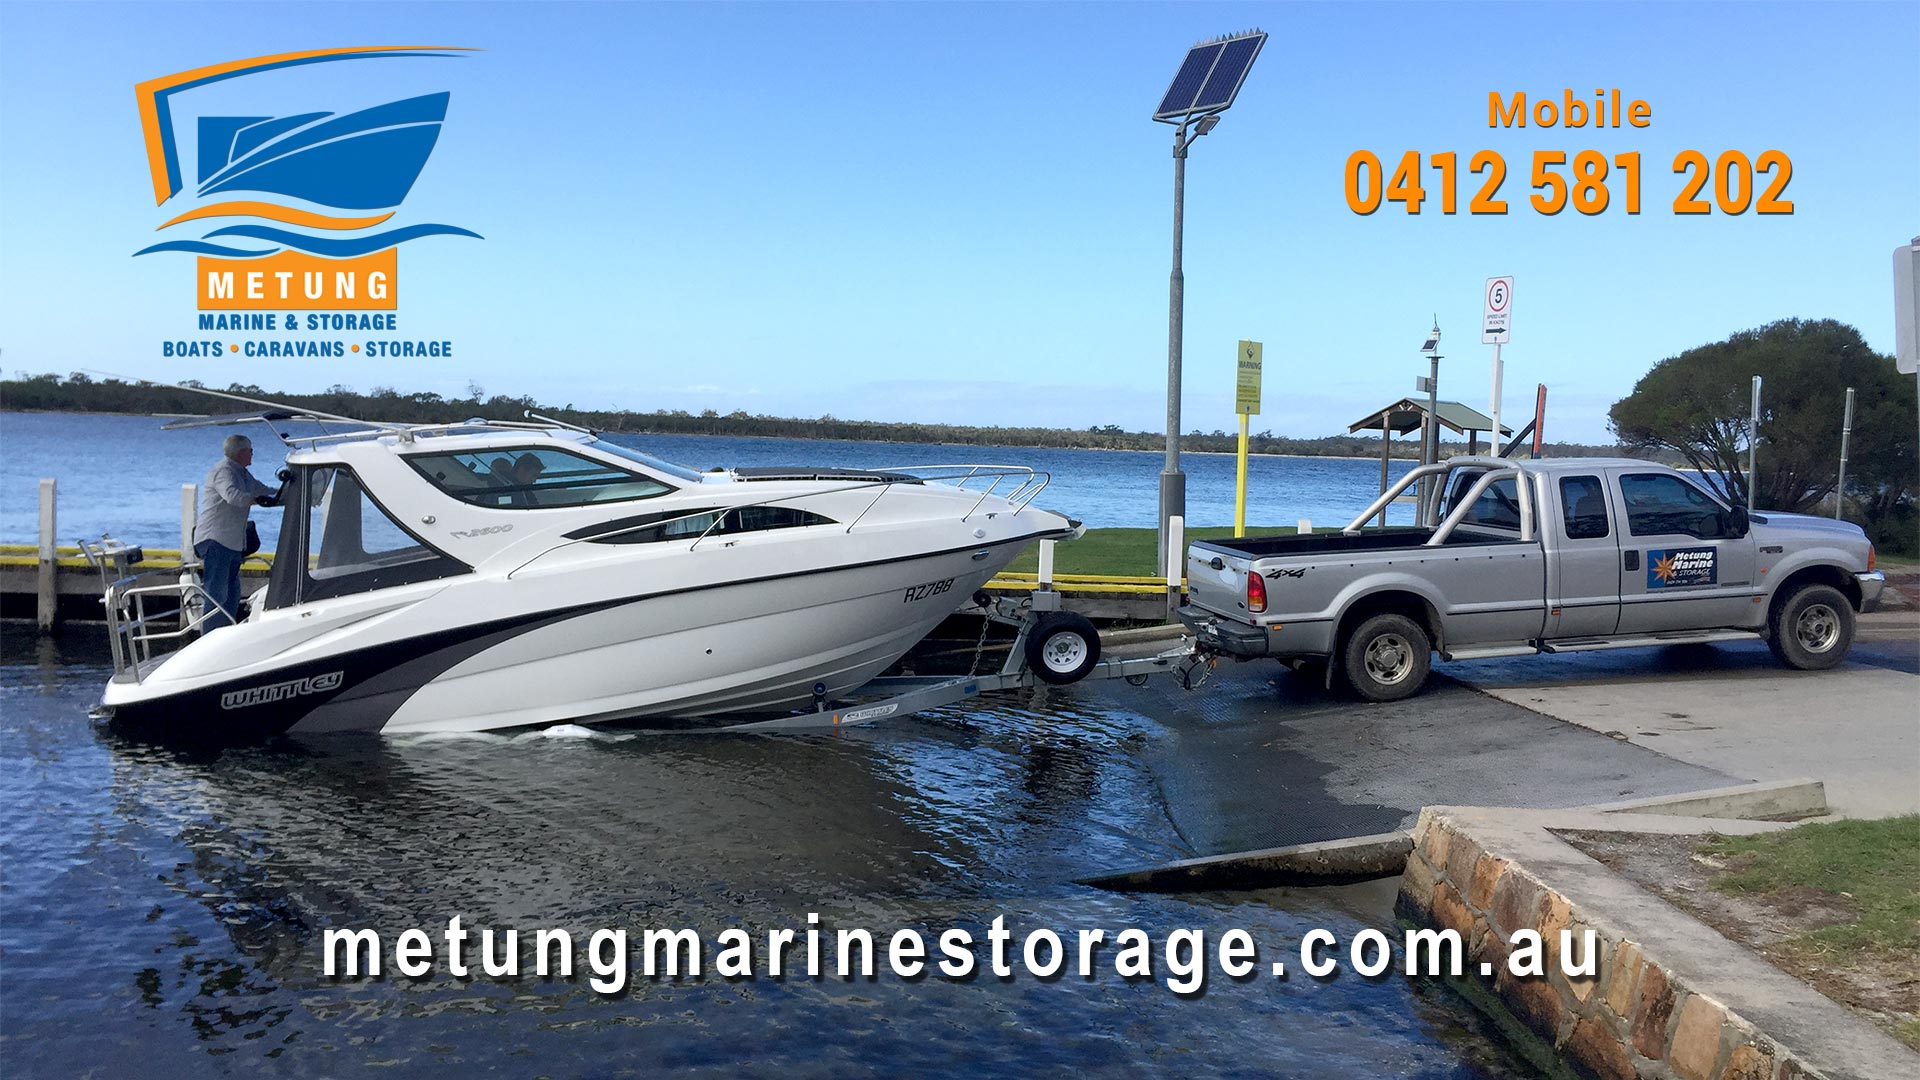 Metung Marine and Storage in East Gippsland